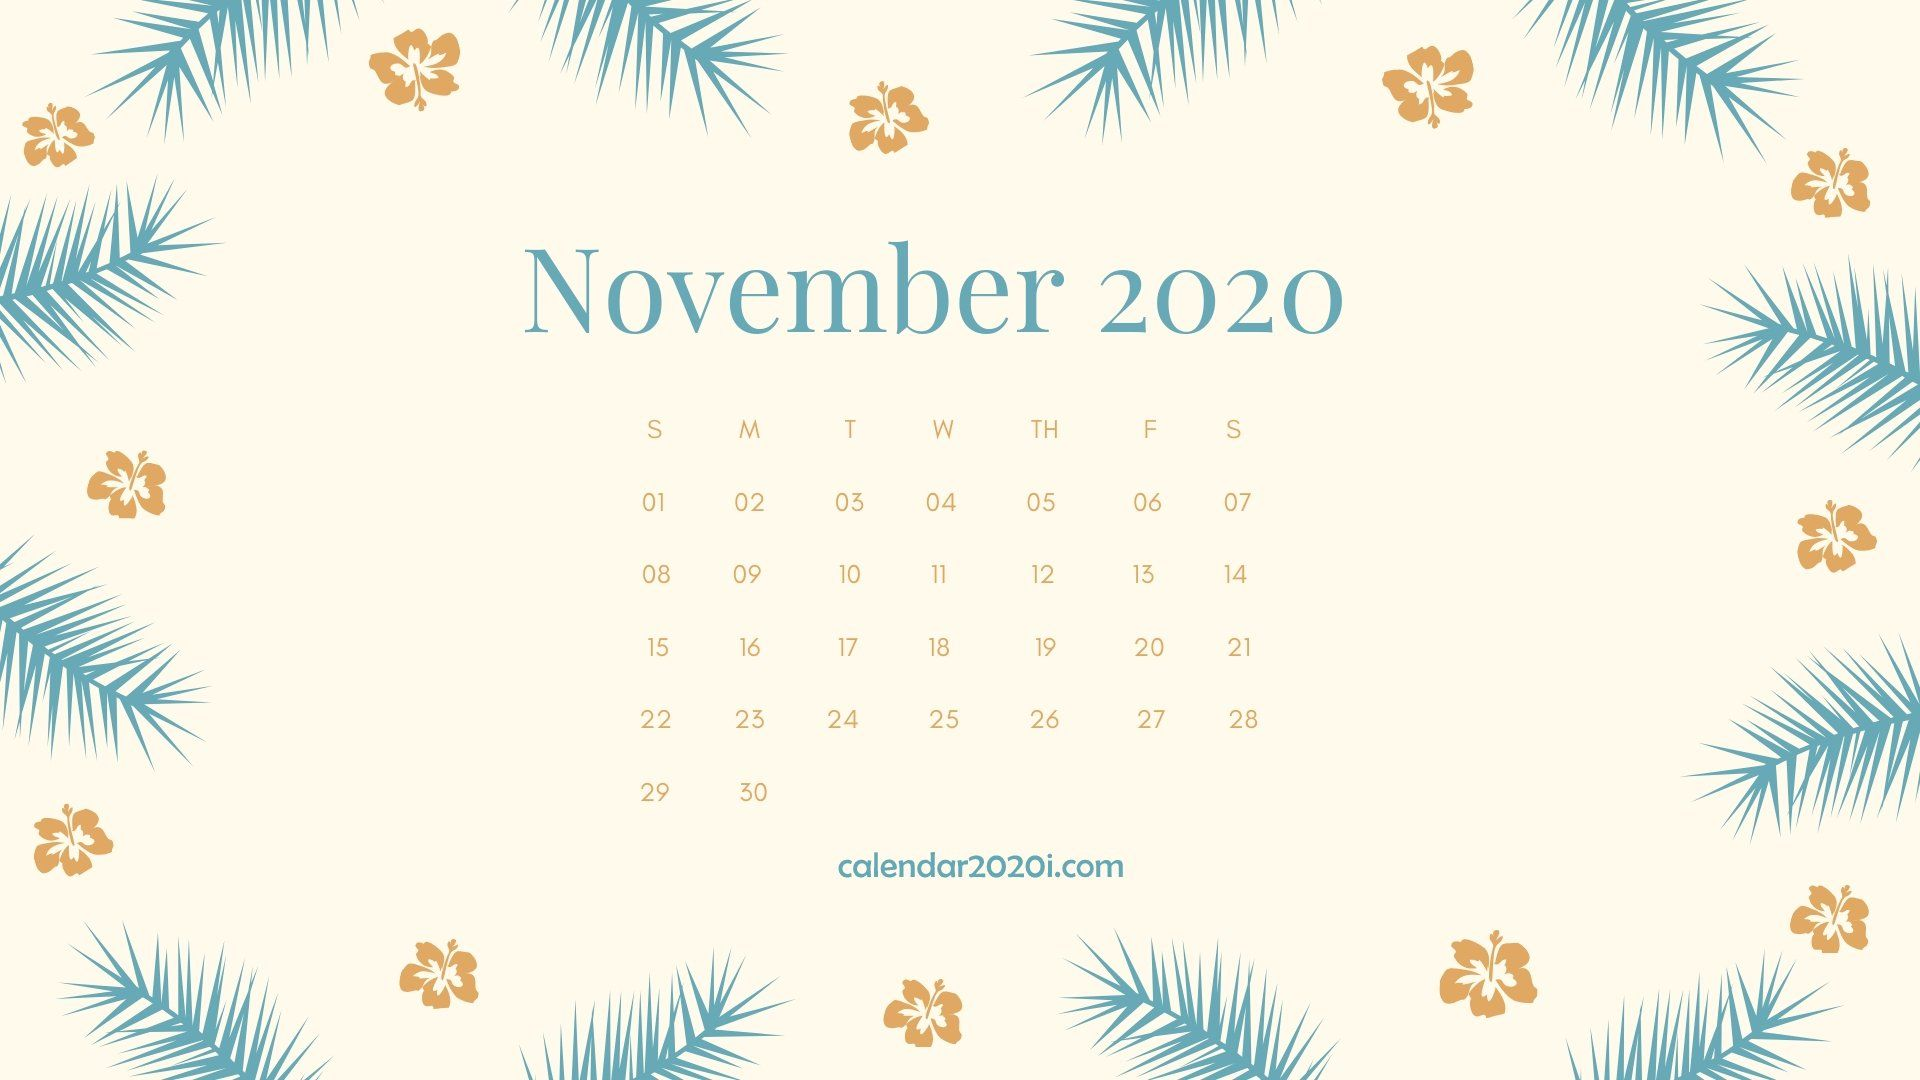 November 2020 Calendar Wallpapers   Top November 2020 1920x1080